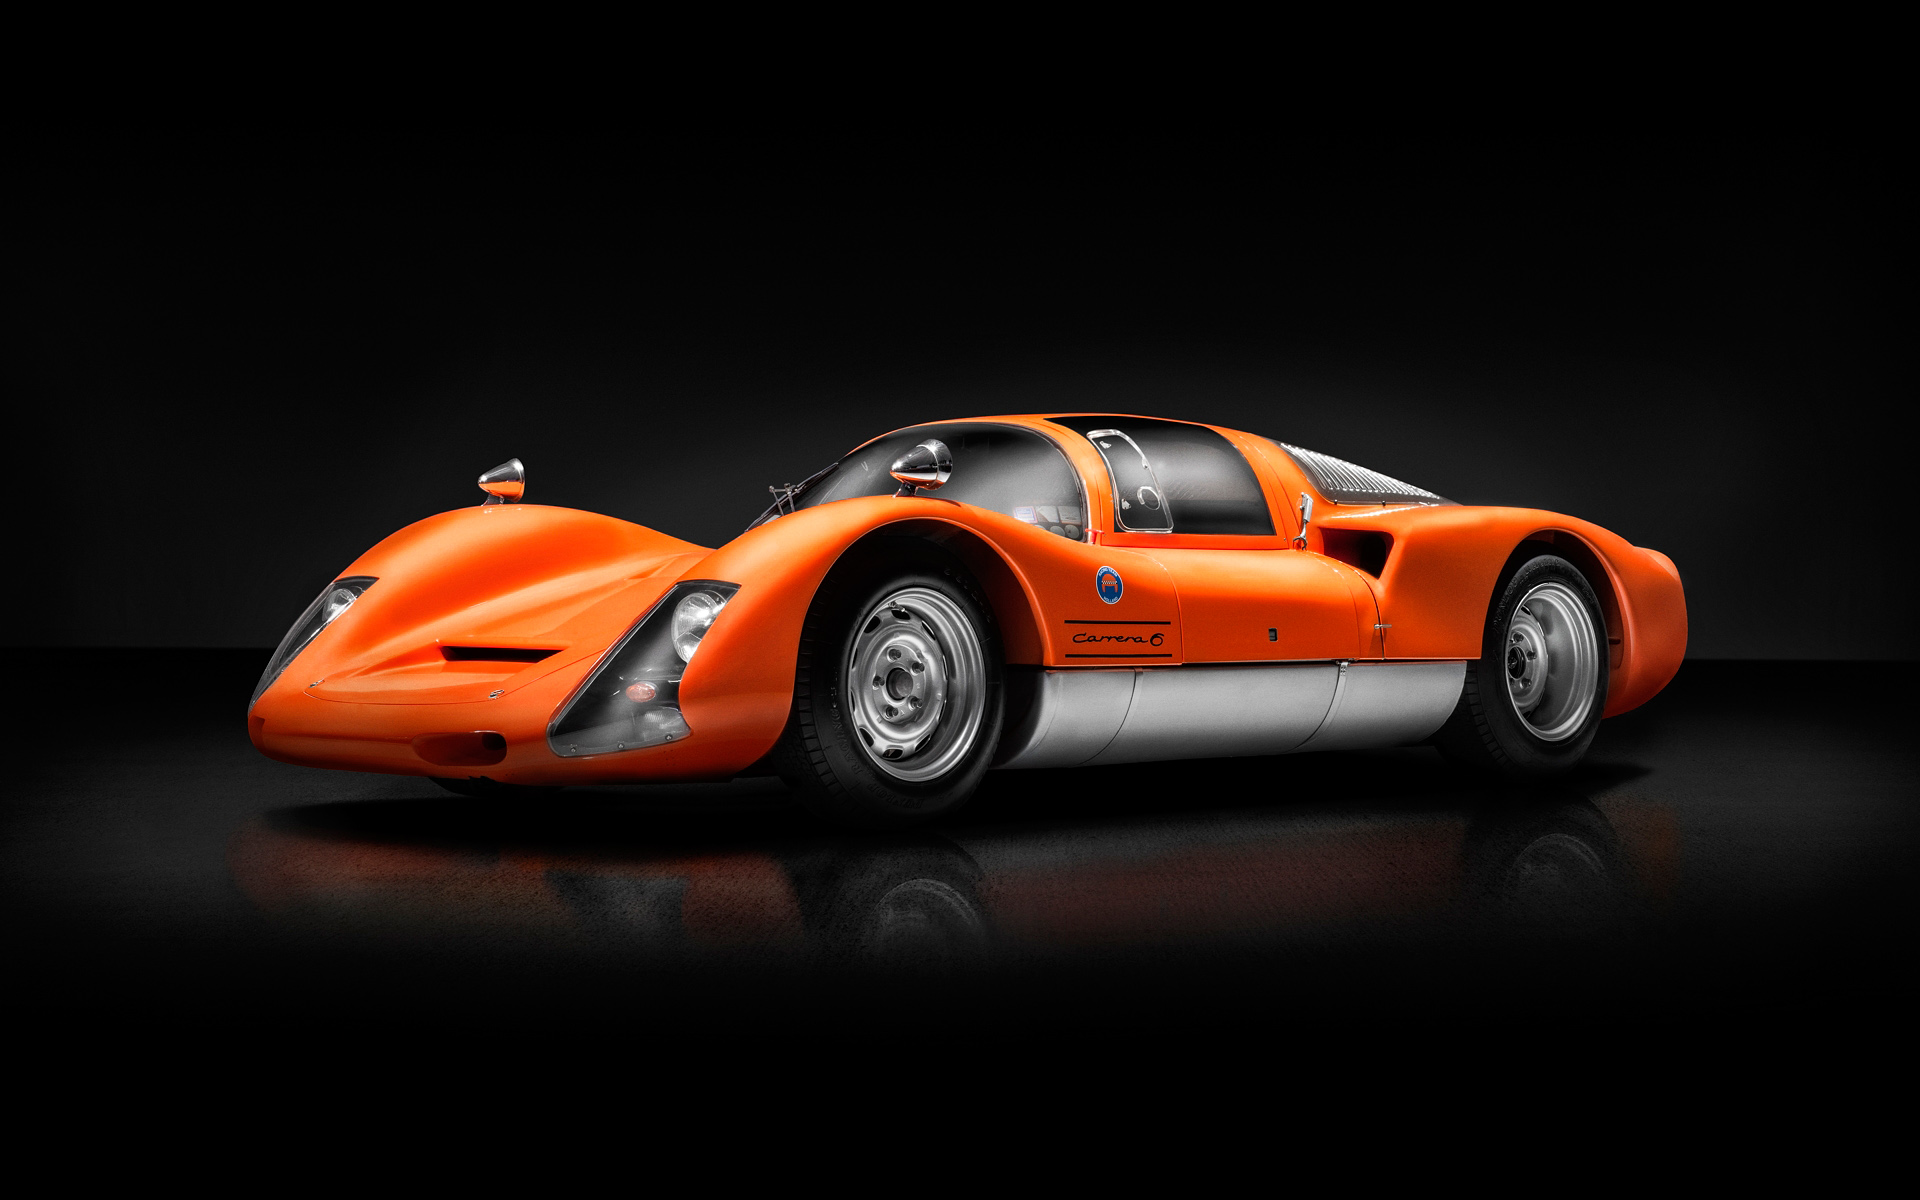 Porsche 906 photographed by Automotive Photographer Blair Bunting